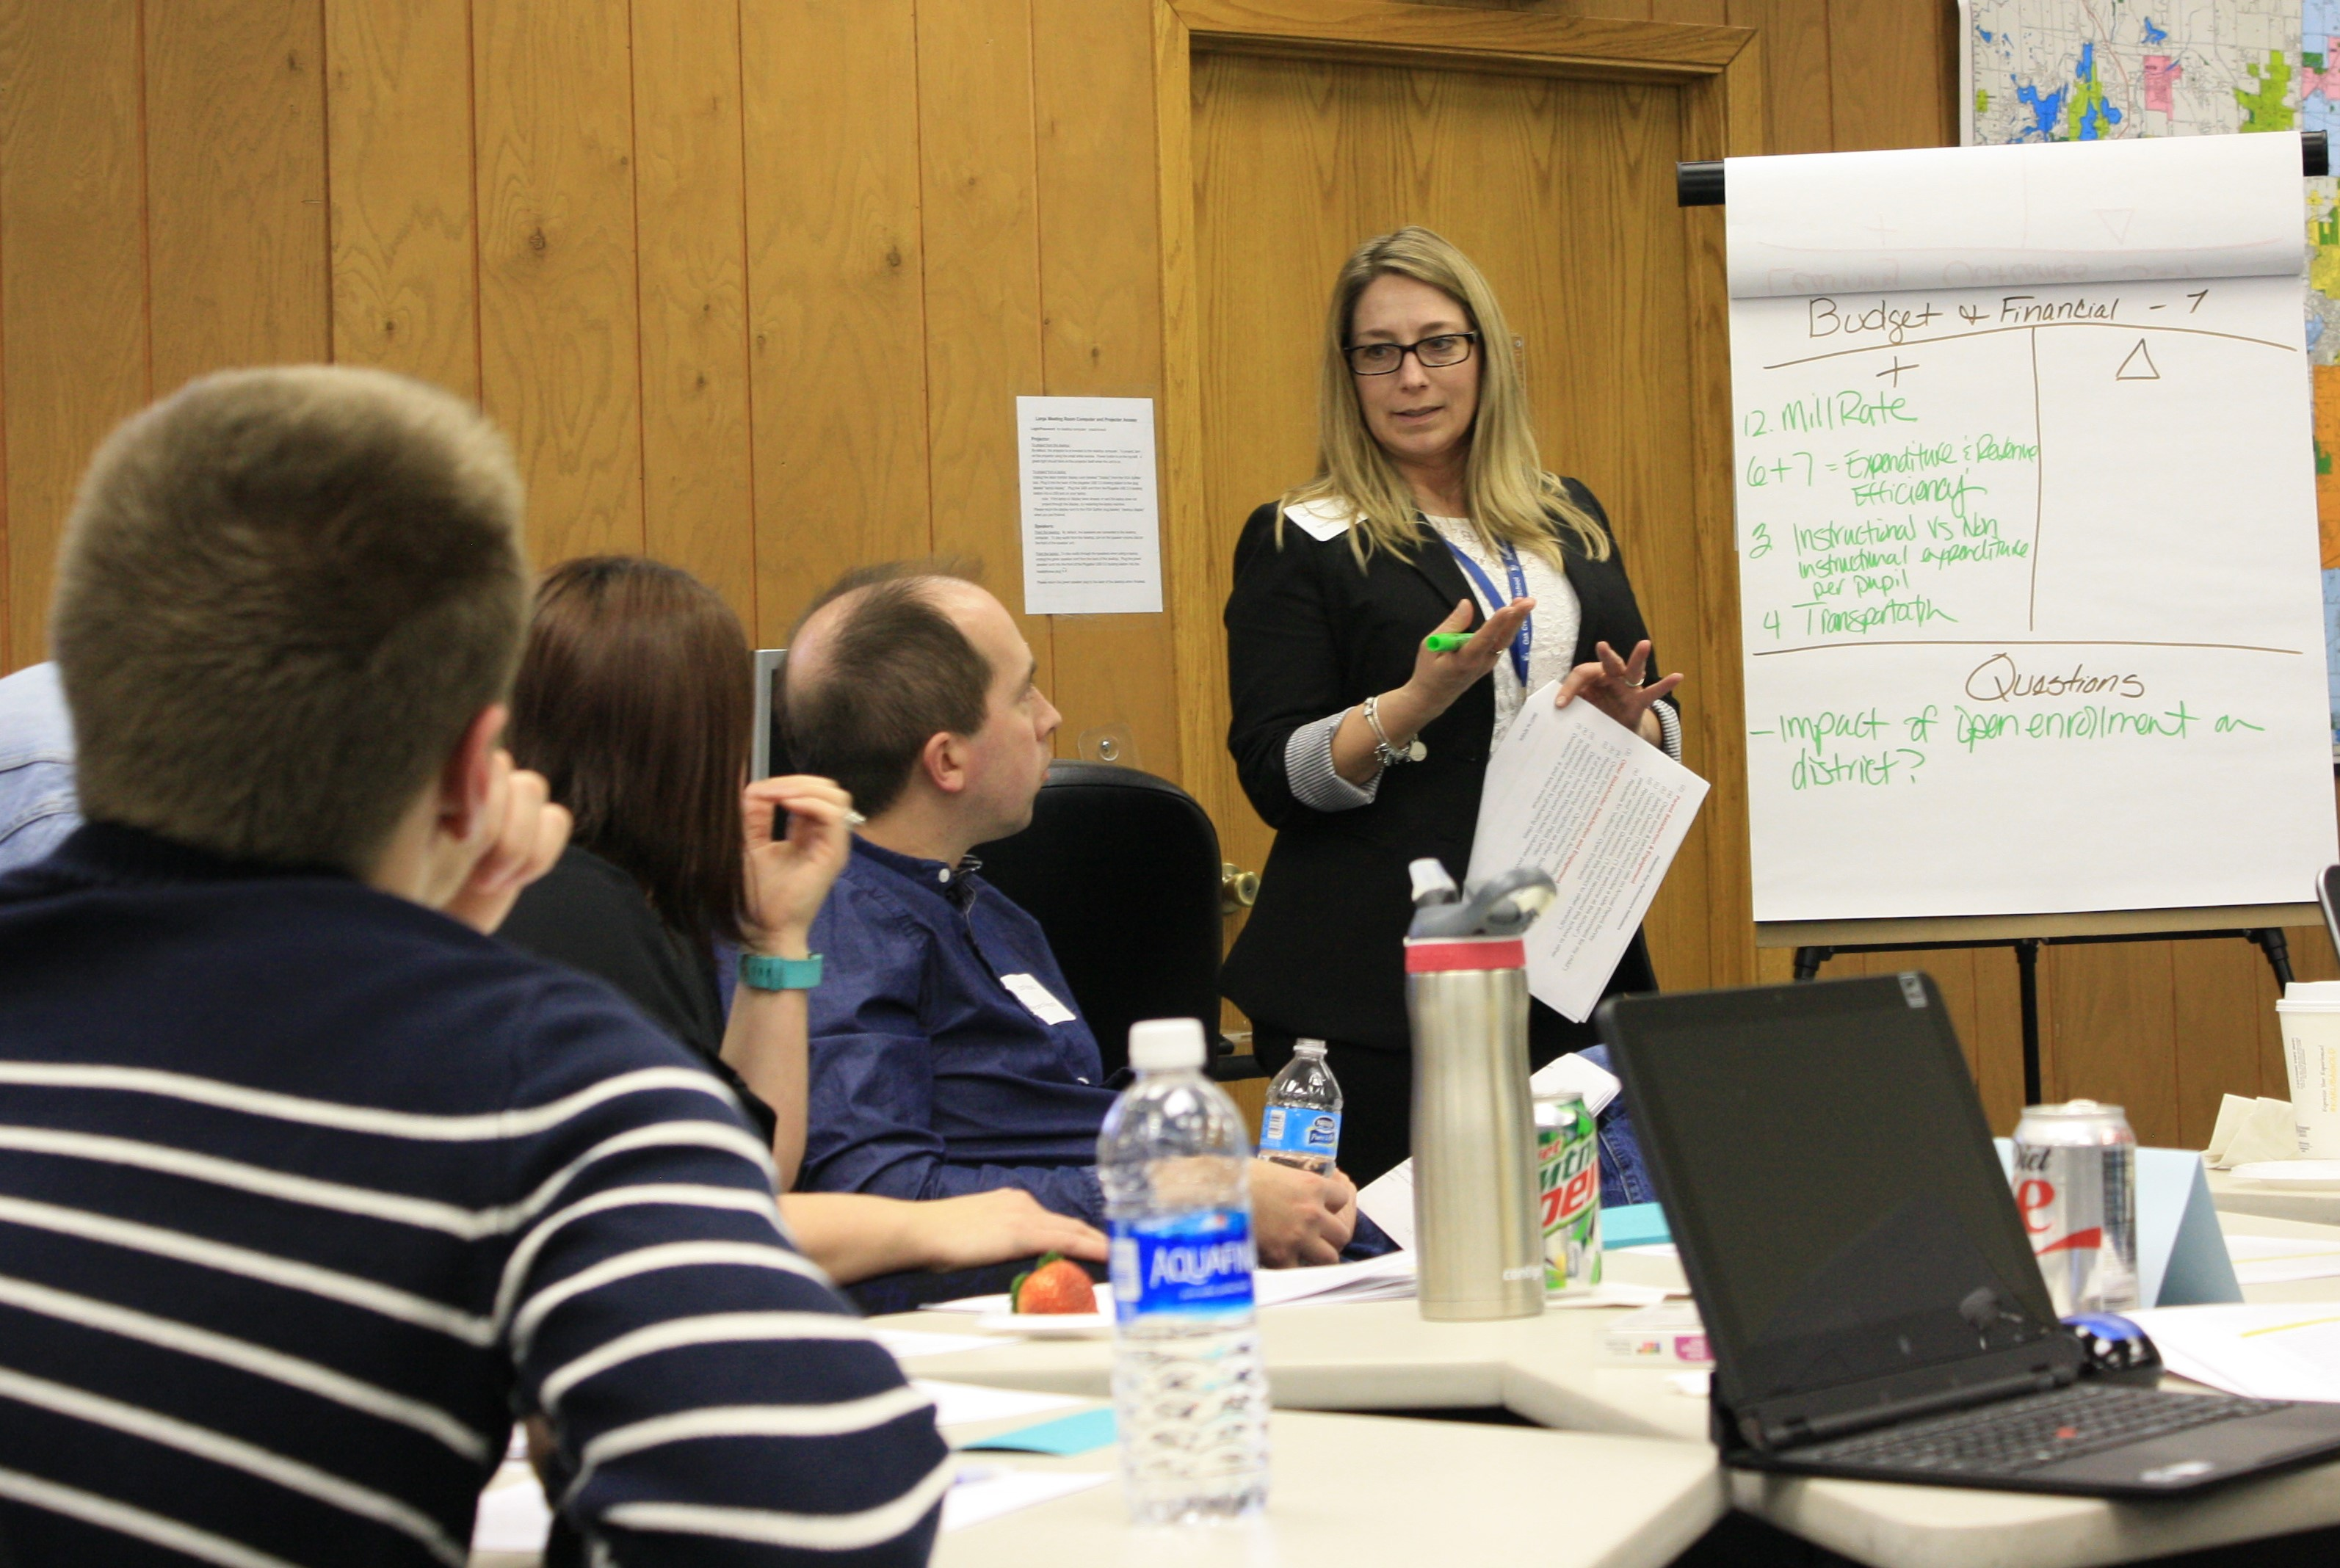 DLT member presenting in front of a table